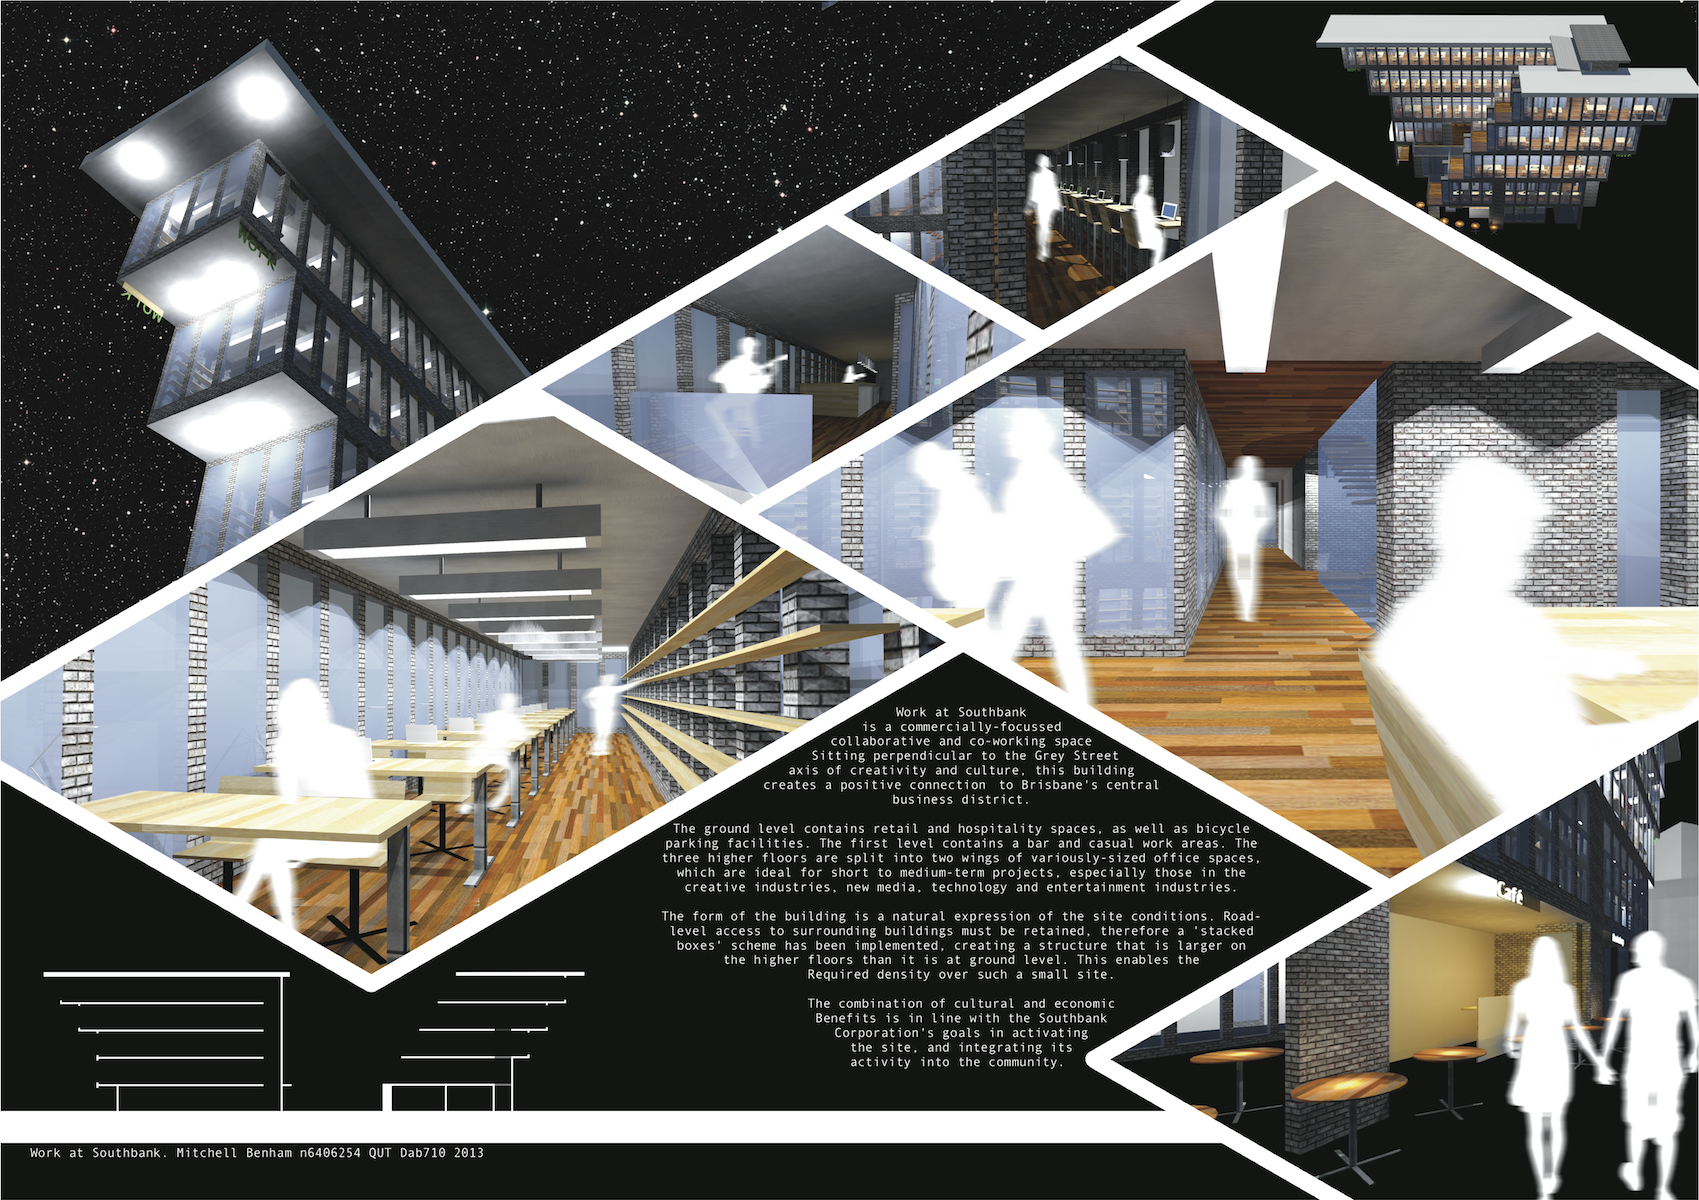 Poster design for architecture - Poster Number 2 From Work At Southbank Presentation